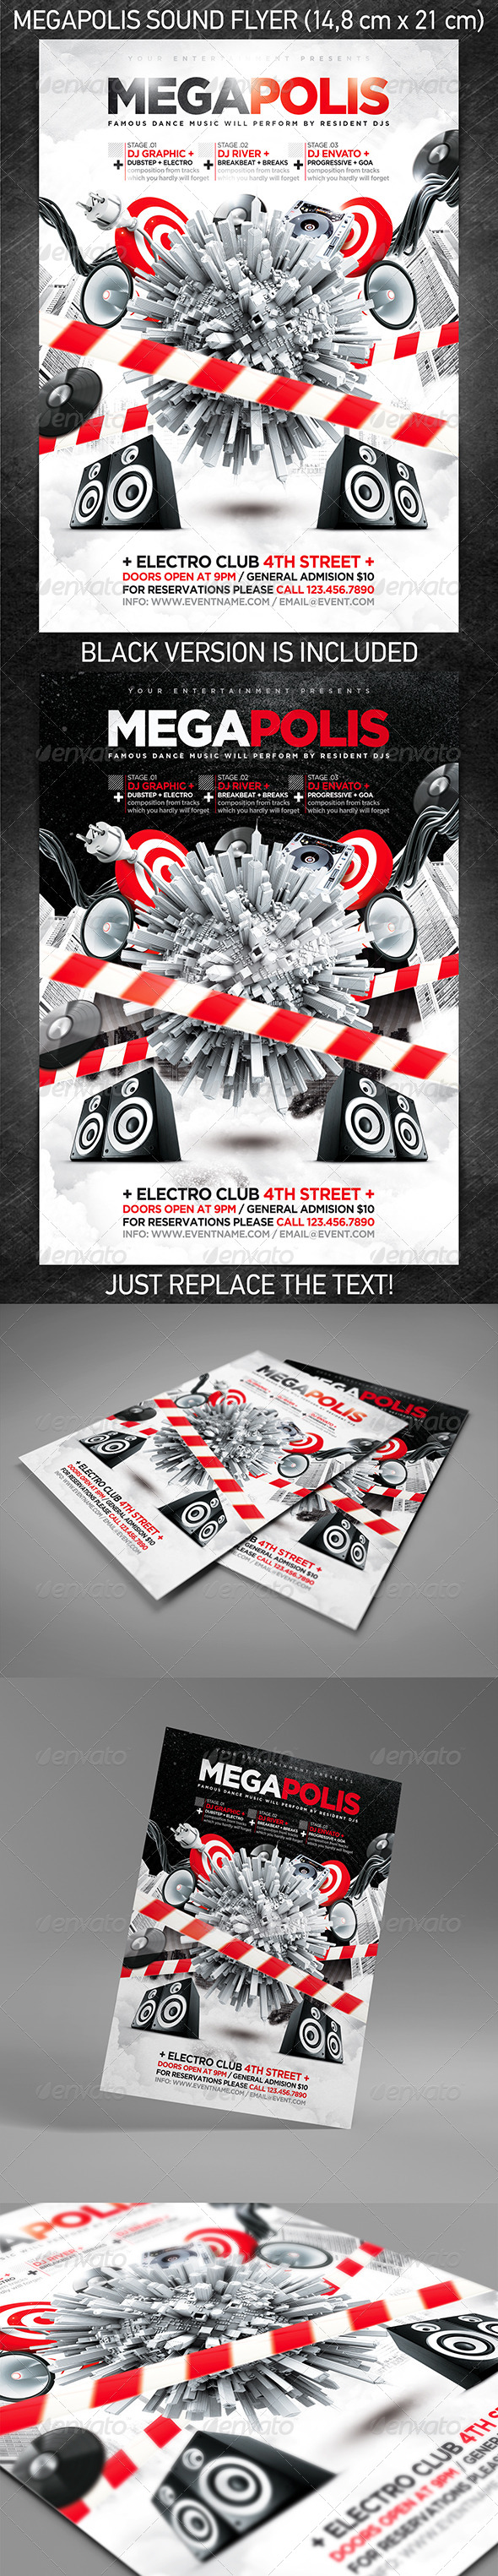 Megapolis Sound Party Flyer - Clubs & Parties Events